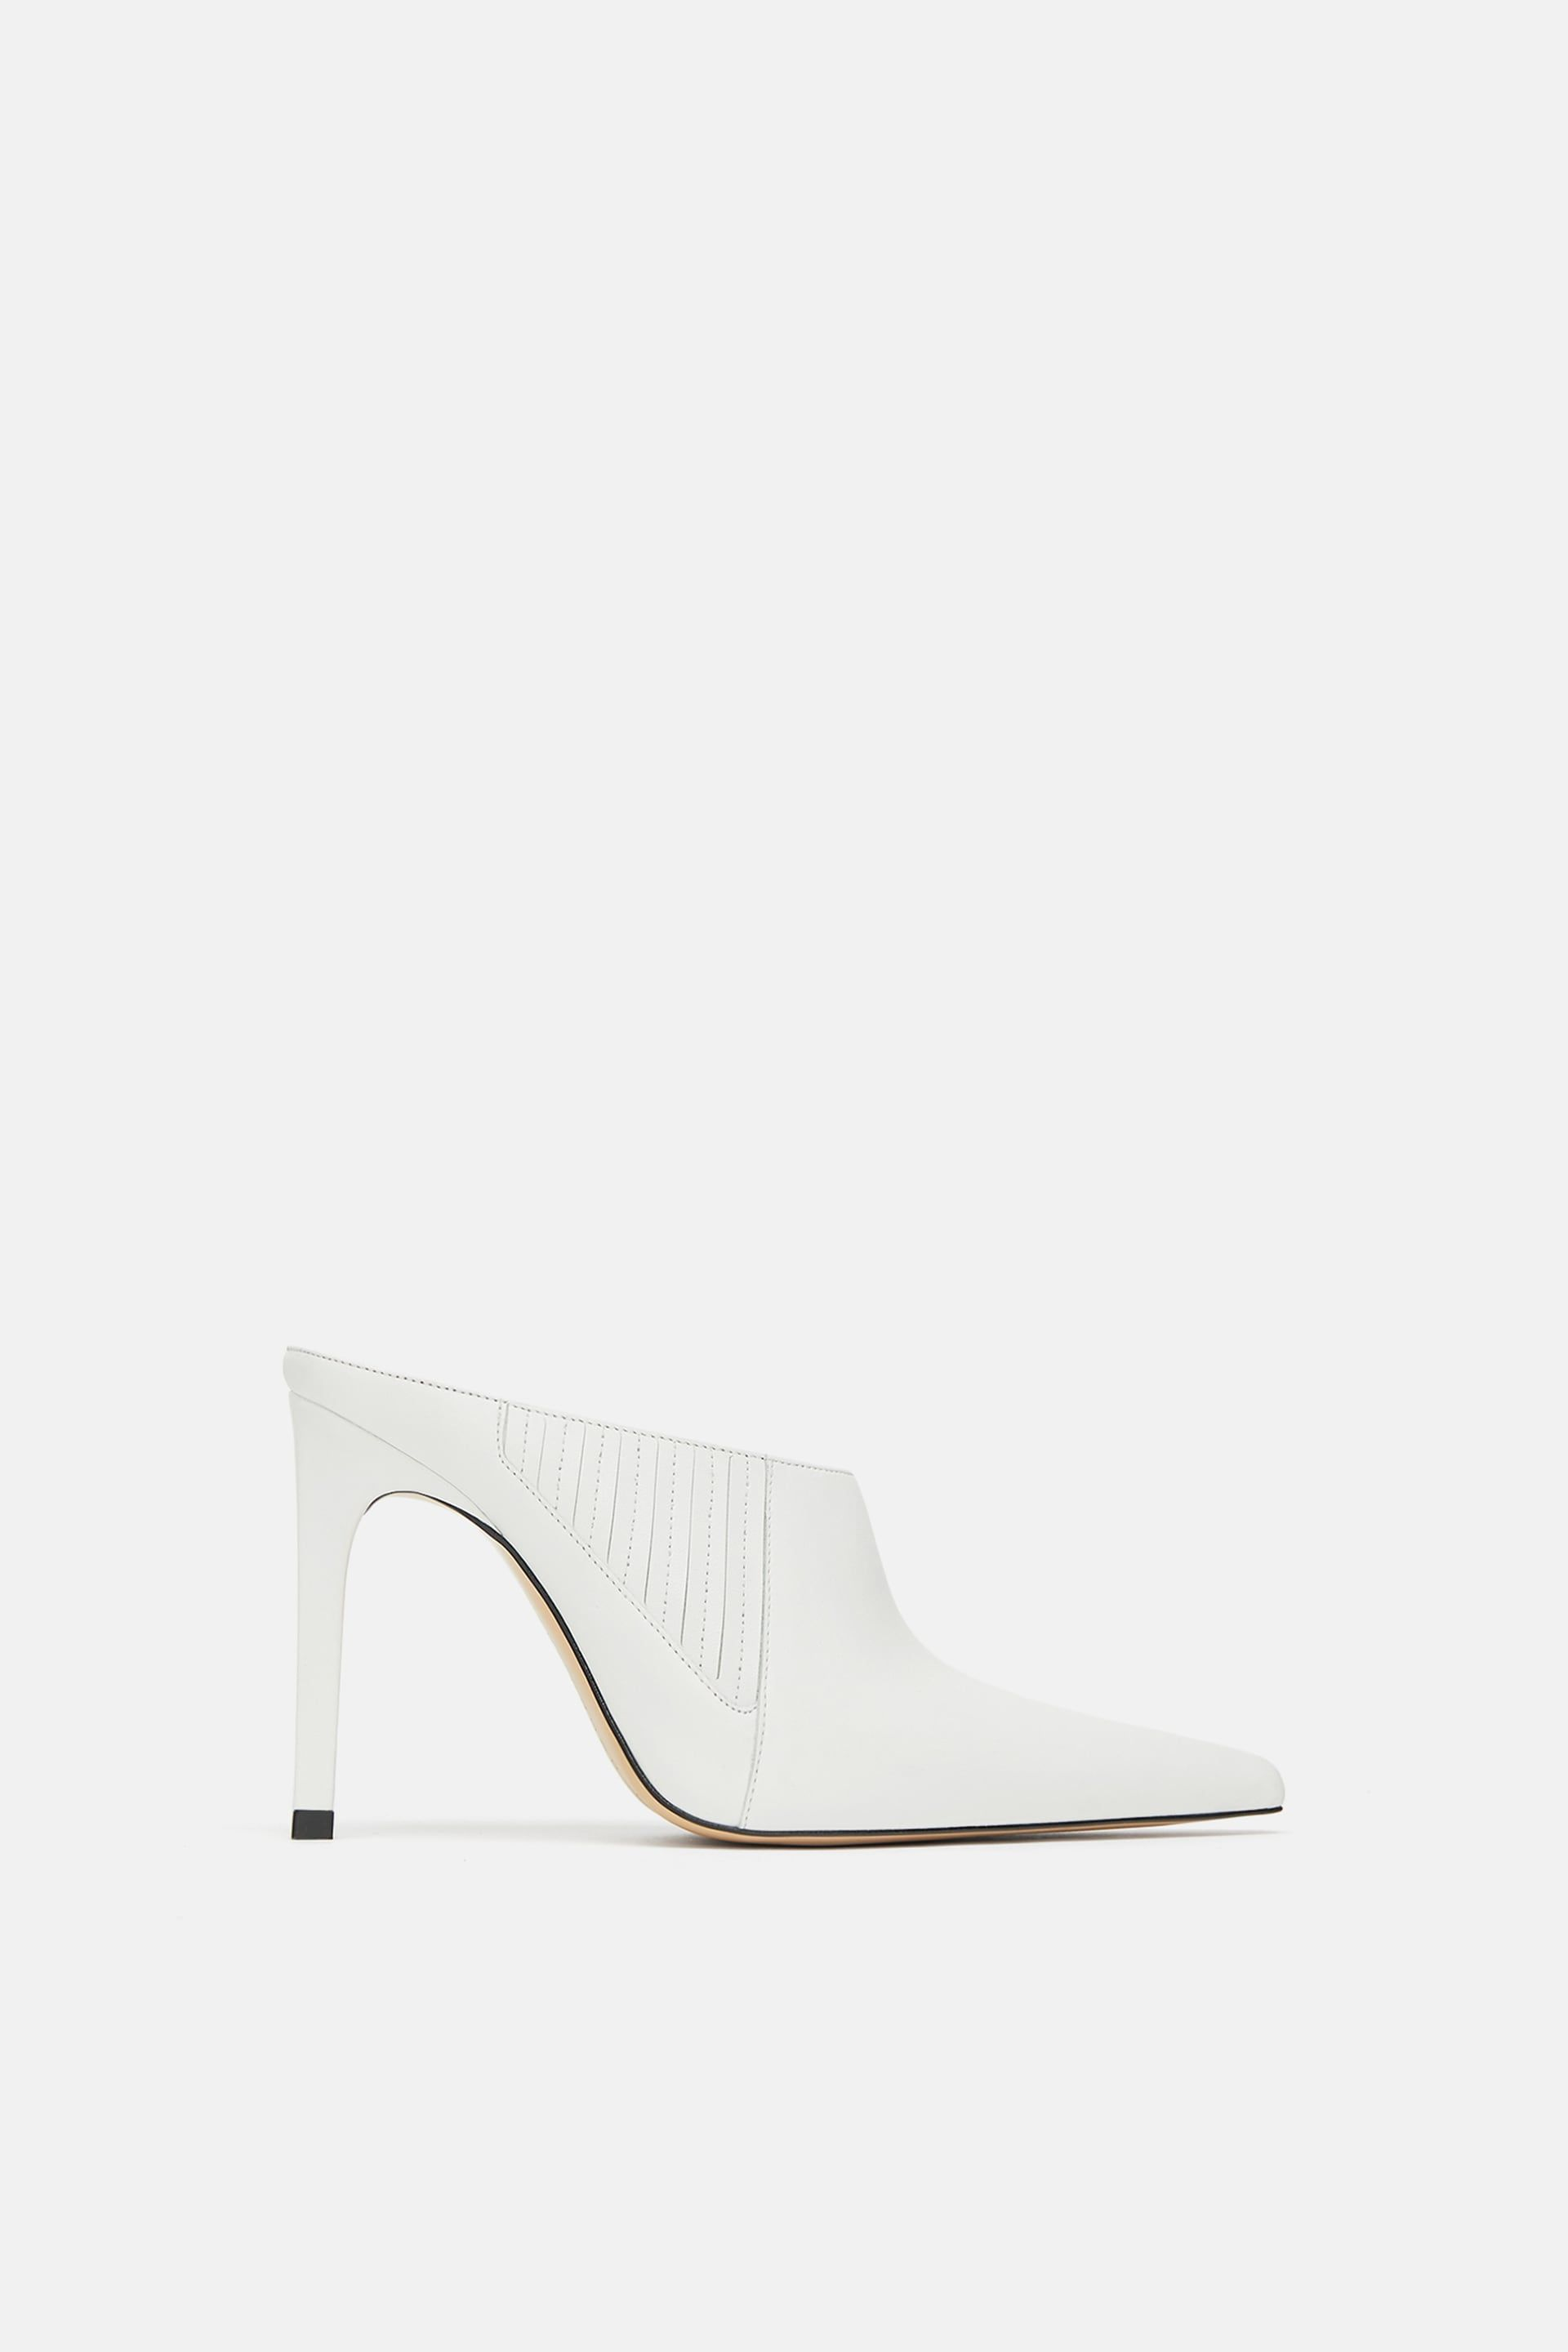 6203d095352a Image 2 of LEATHER HEELED MULES from Zara